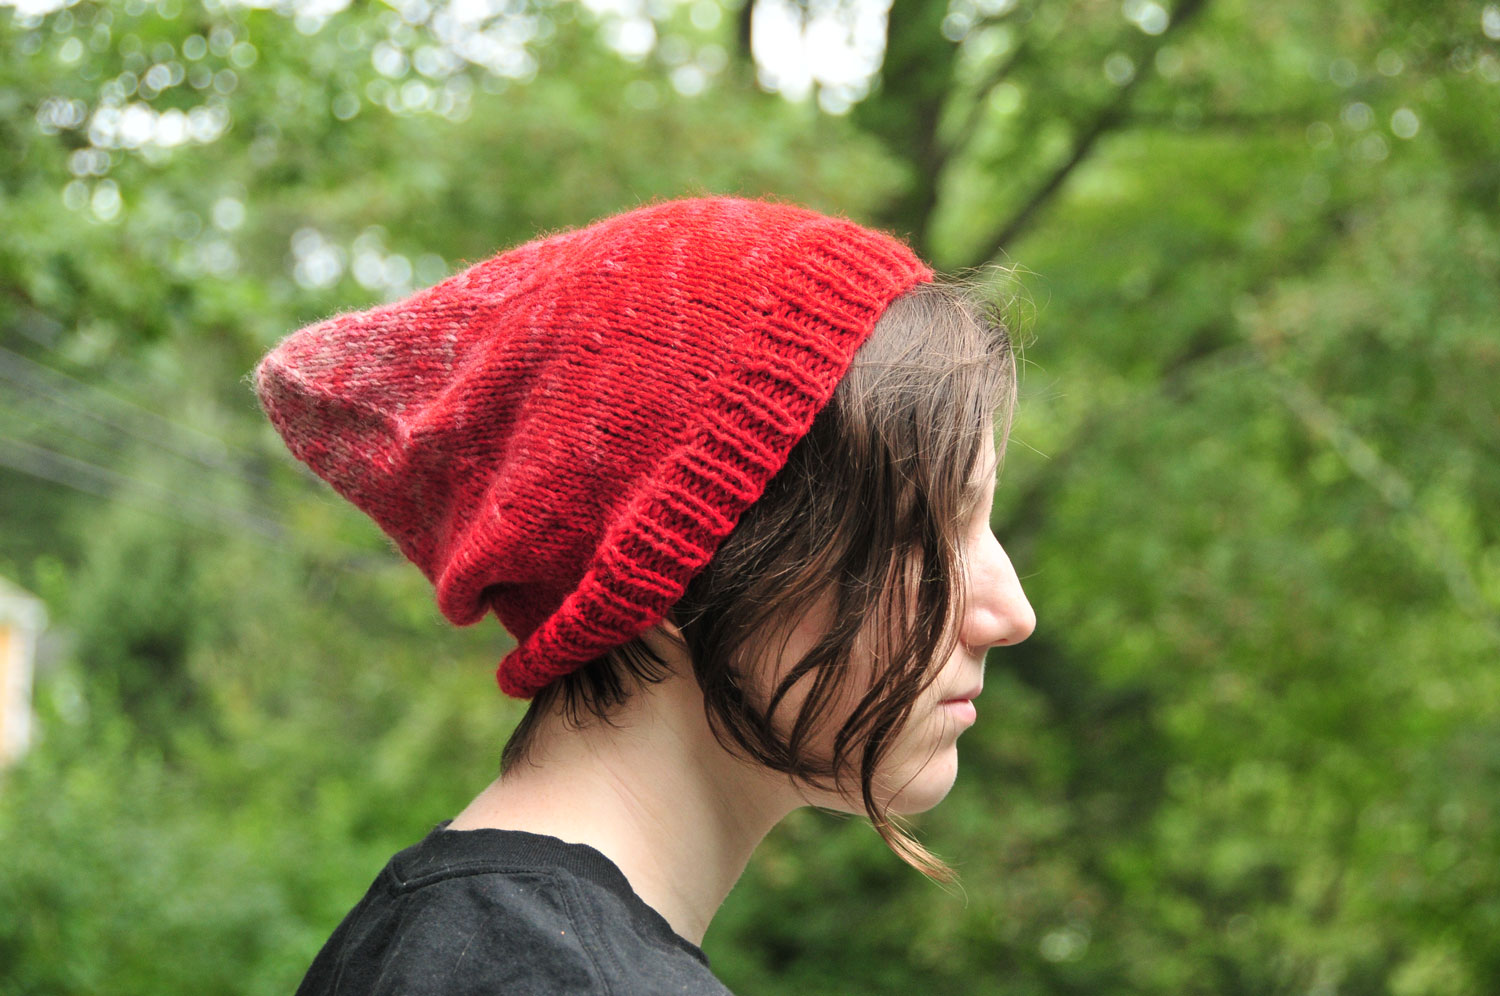 Gnome Hat Knitting Pattern Free : So, I make stuff: Ironic Gnome Hat Pattern